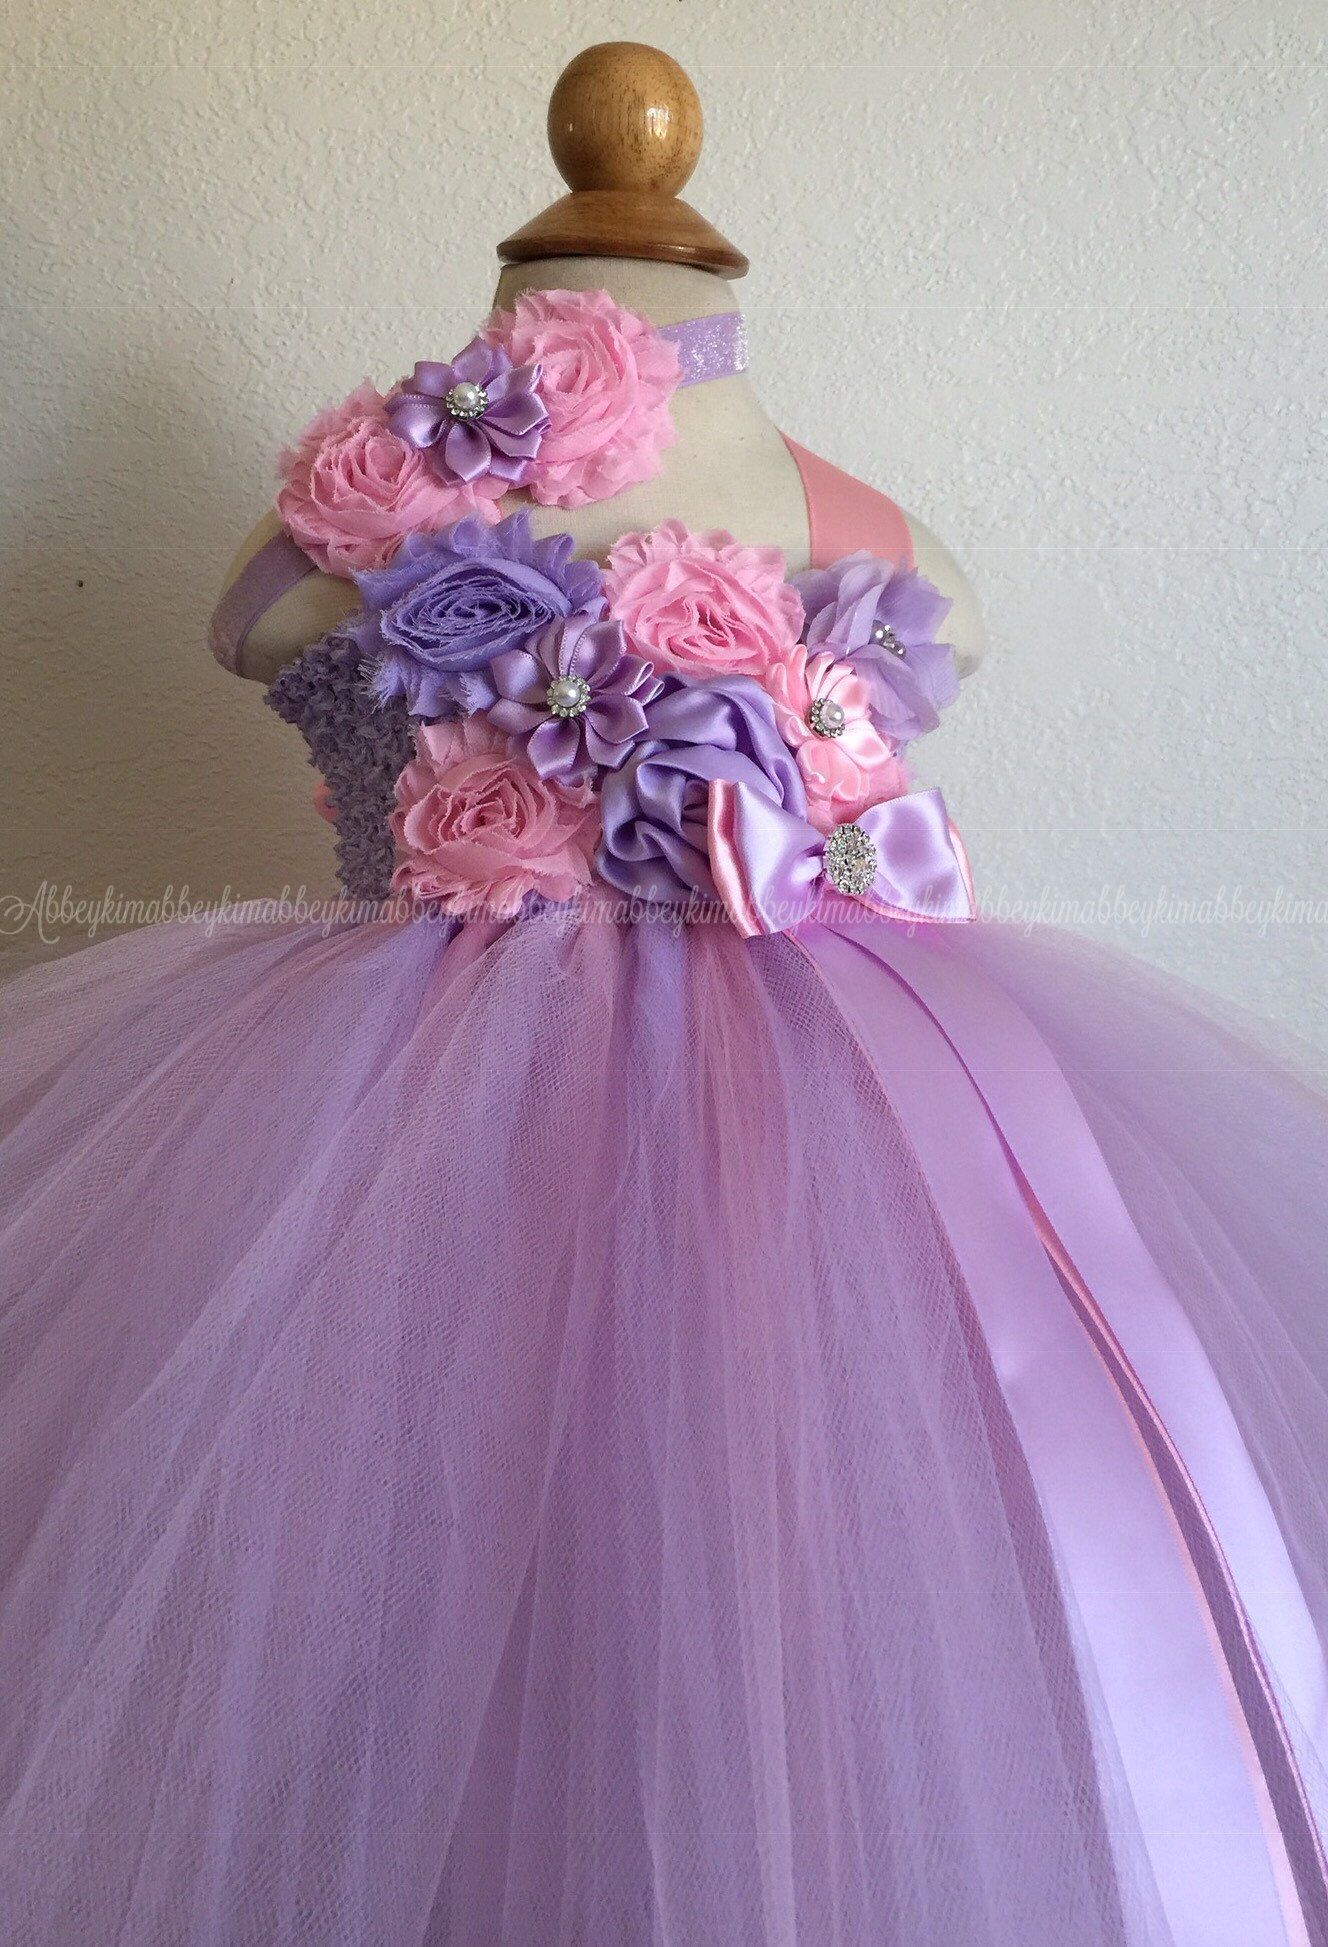 Beautiful baby girl first birthday tutu dress in pink and